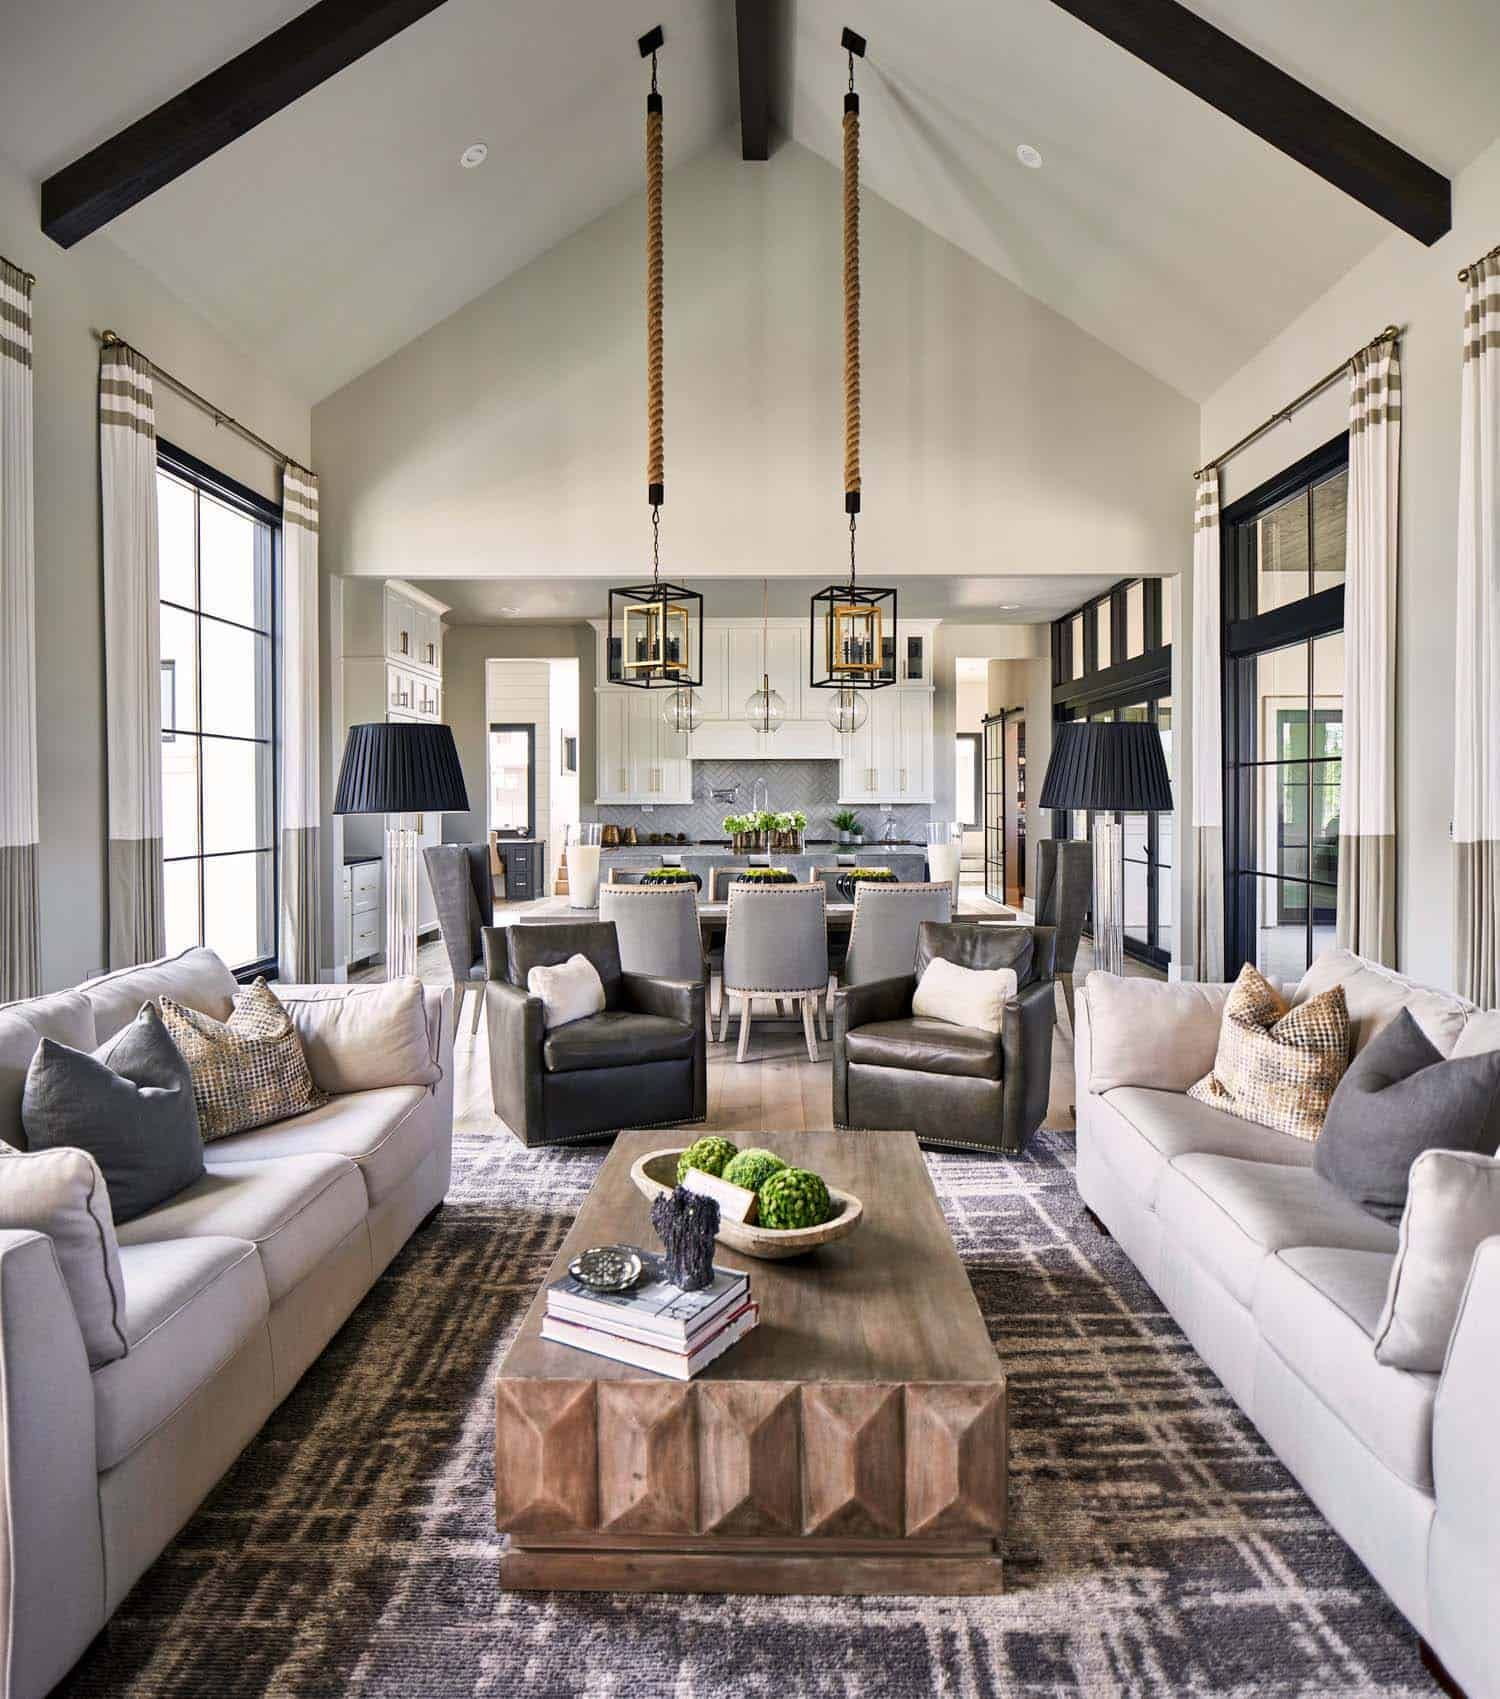 One Kindesign: 60 Most Popular Living Rooms Featured On One Kindesign For